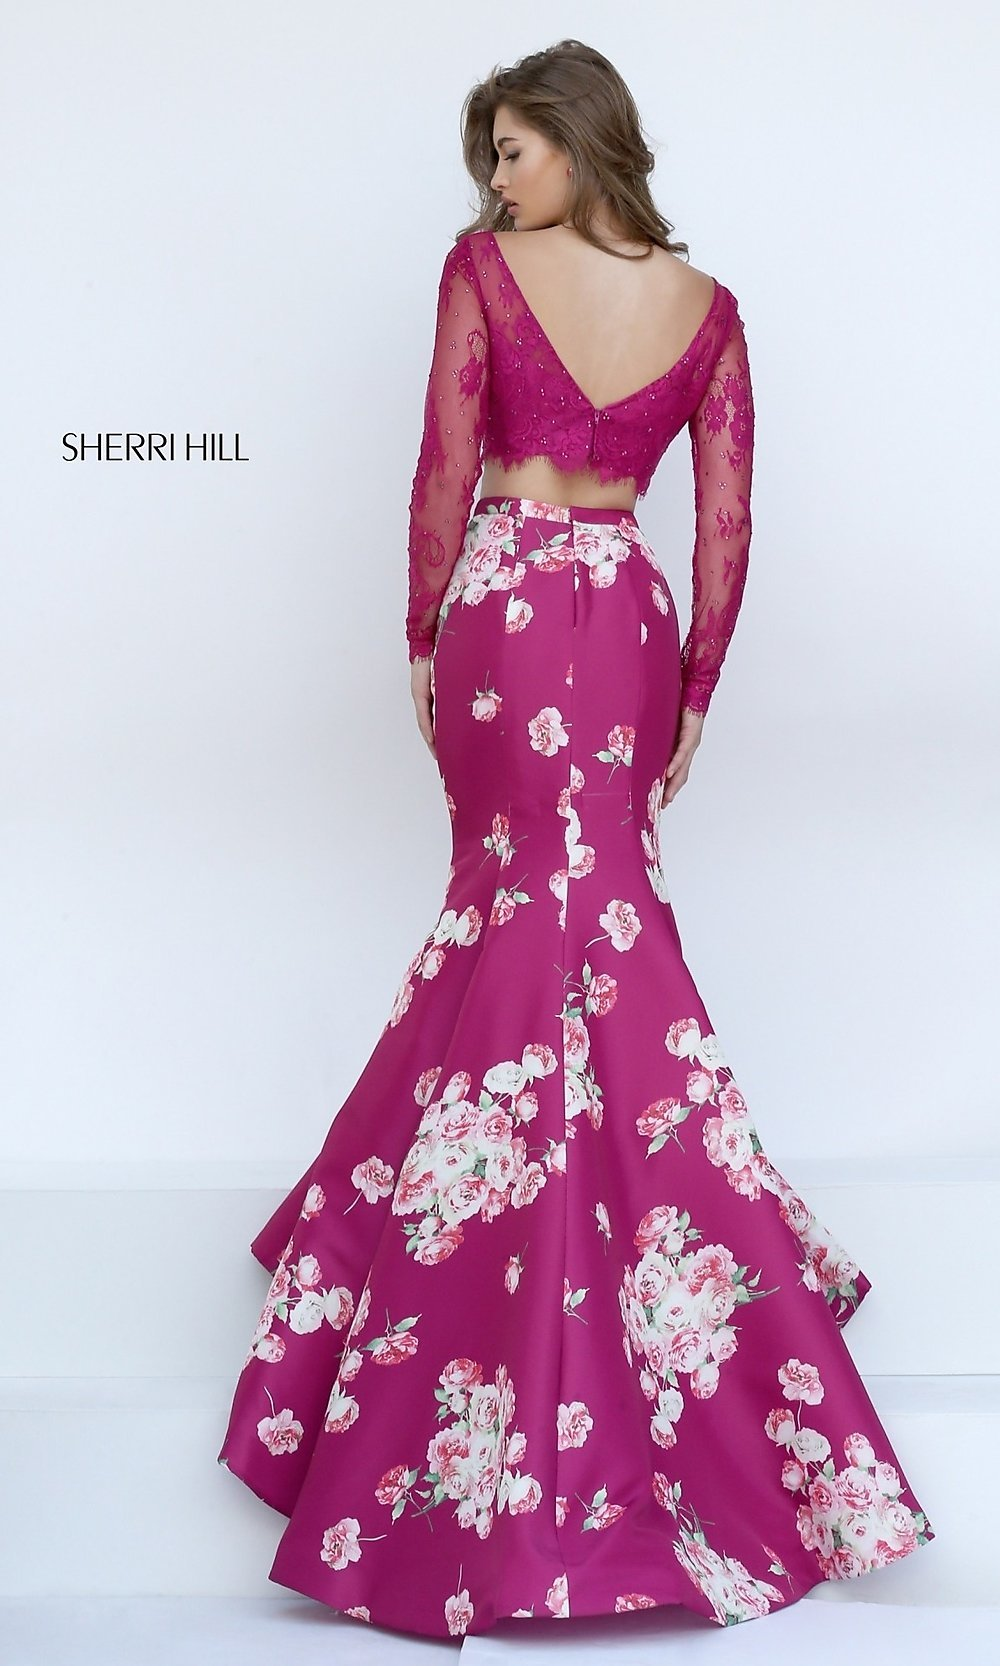 Encouraging Lace Two Piece Long Prom Floral Prom Dresses Under 100 Floral Prom Dresses Under 200 Hover To Zoom Floral wedding dress Floral Prom Dresses